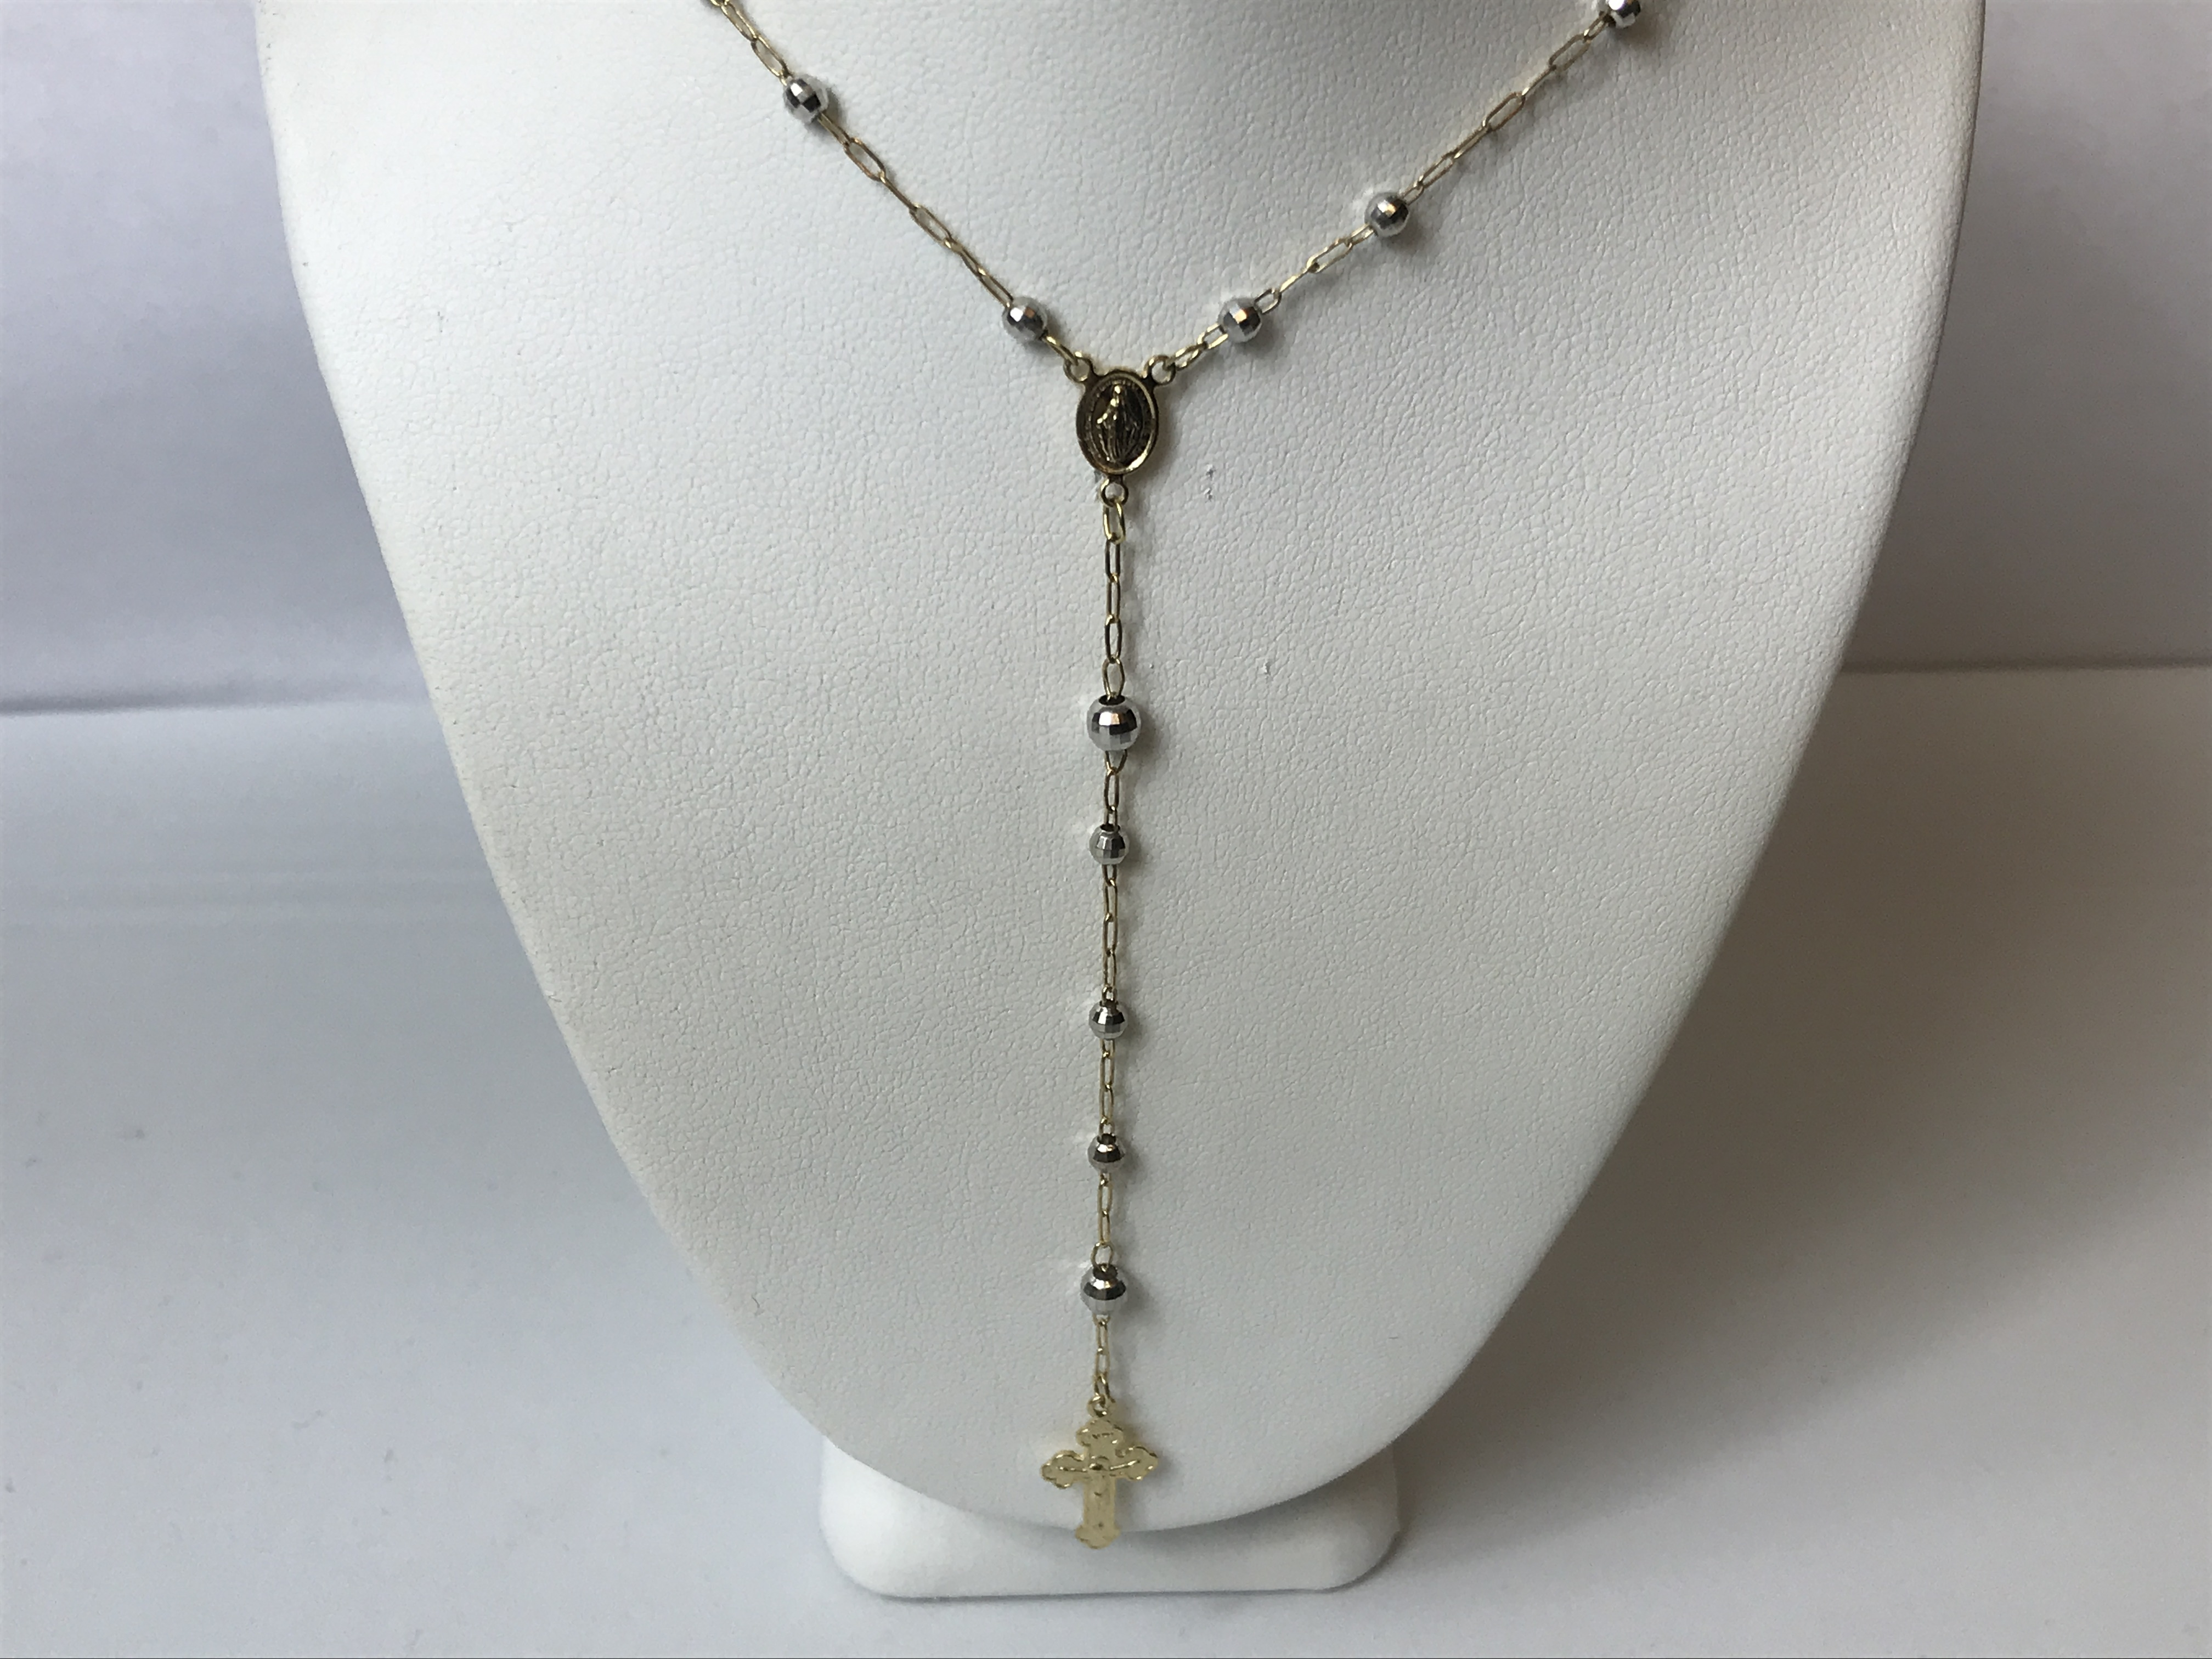 Rosarie Chain Necklace 14K Yellow & White Gold 5.4g